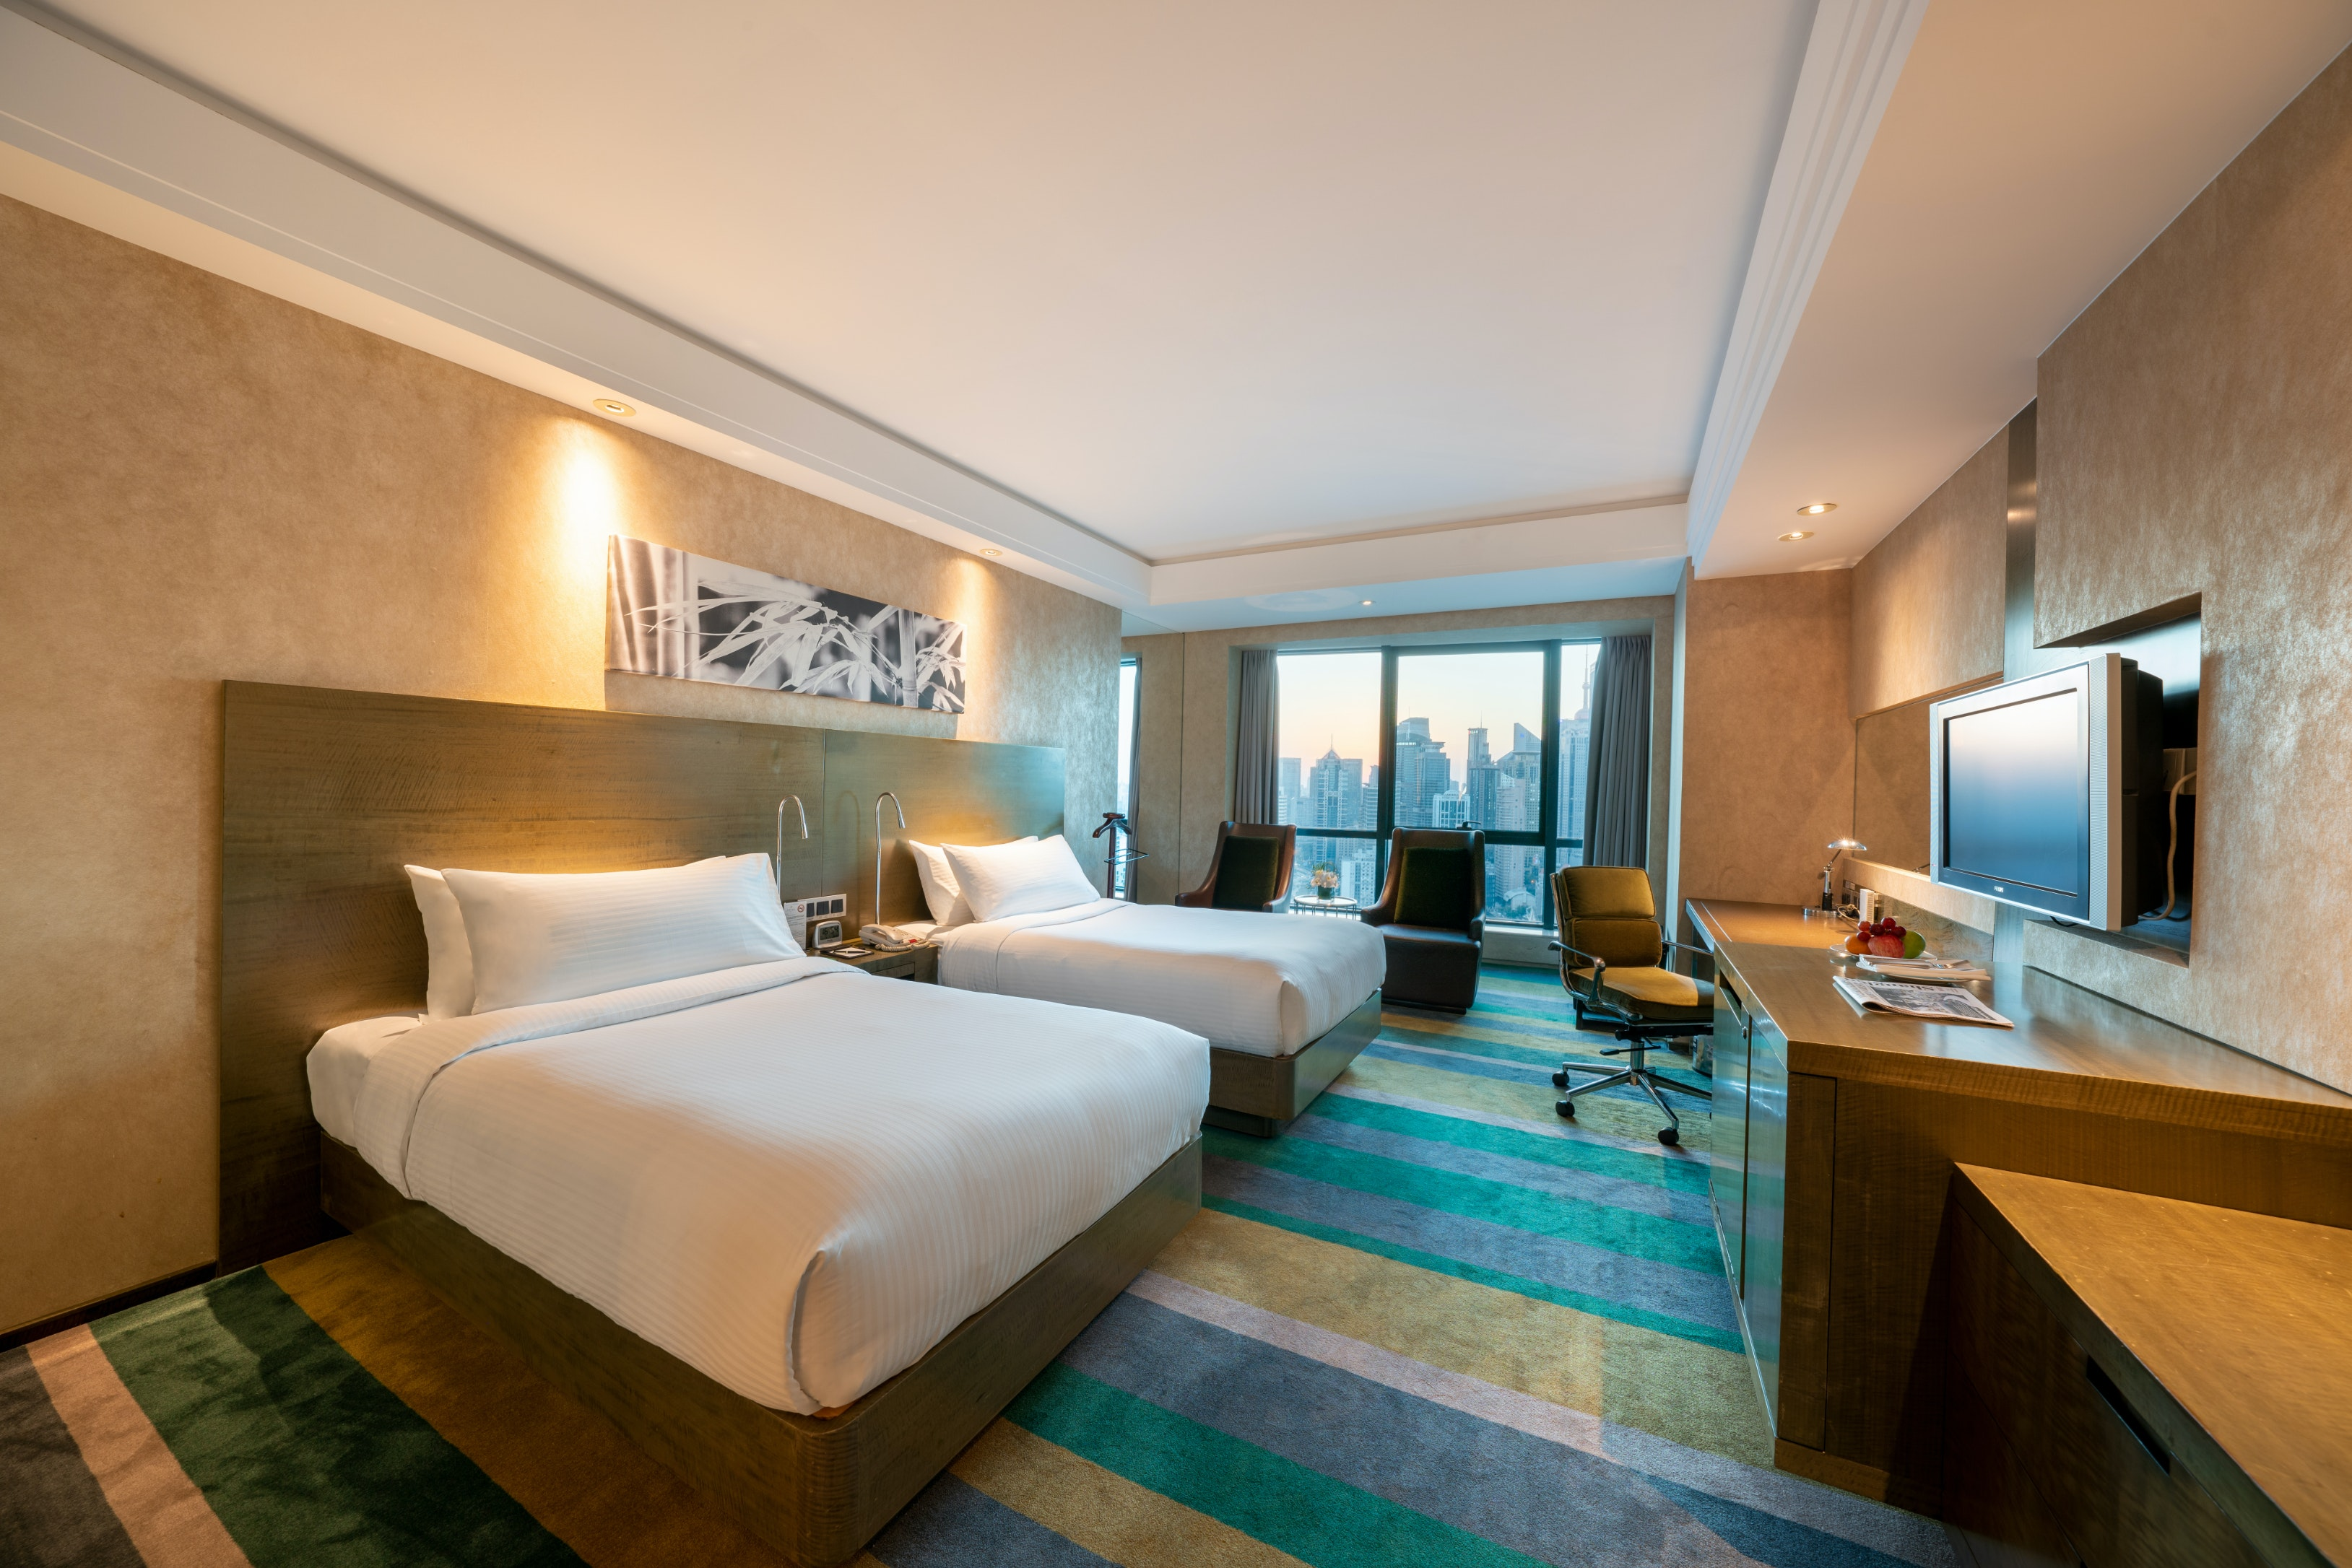 Deluxe Twin Bed Room The Eton Hotel Shanghai 上海裕景大飯店